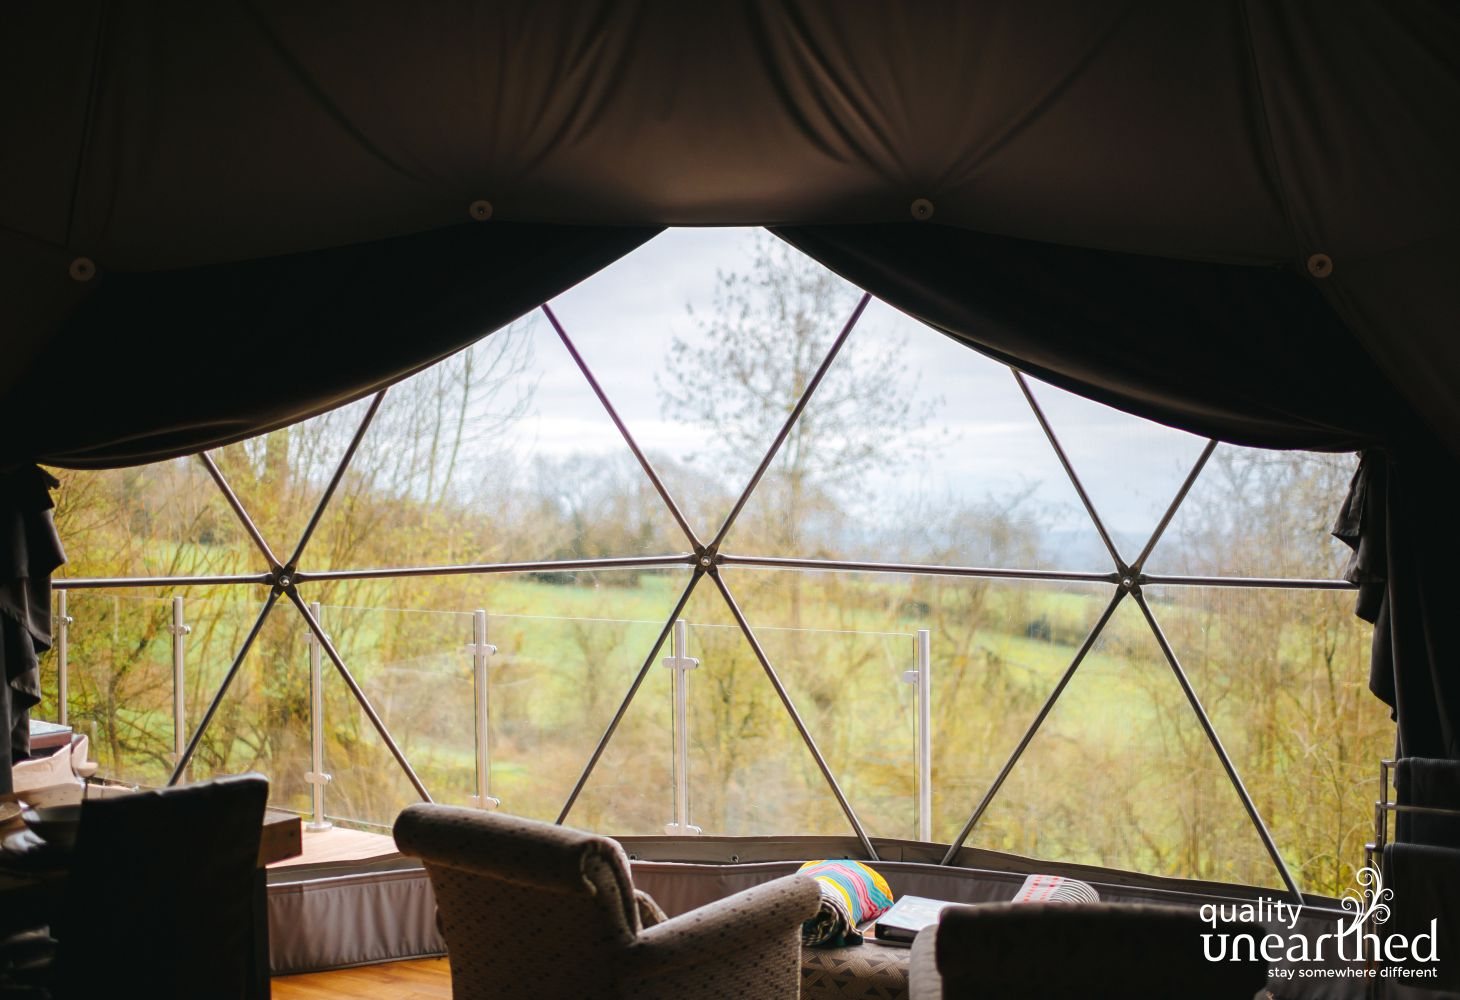 Star Dome in Shropshire